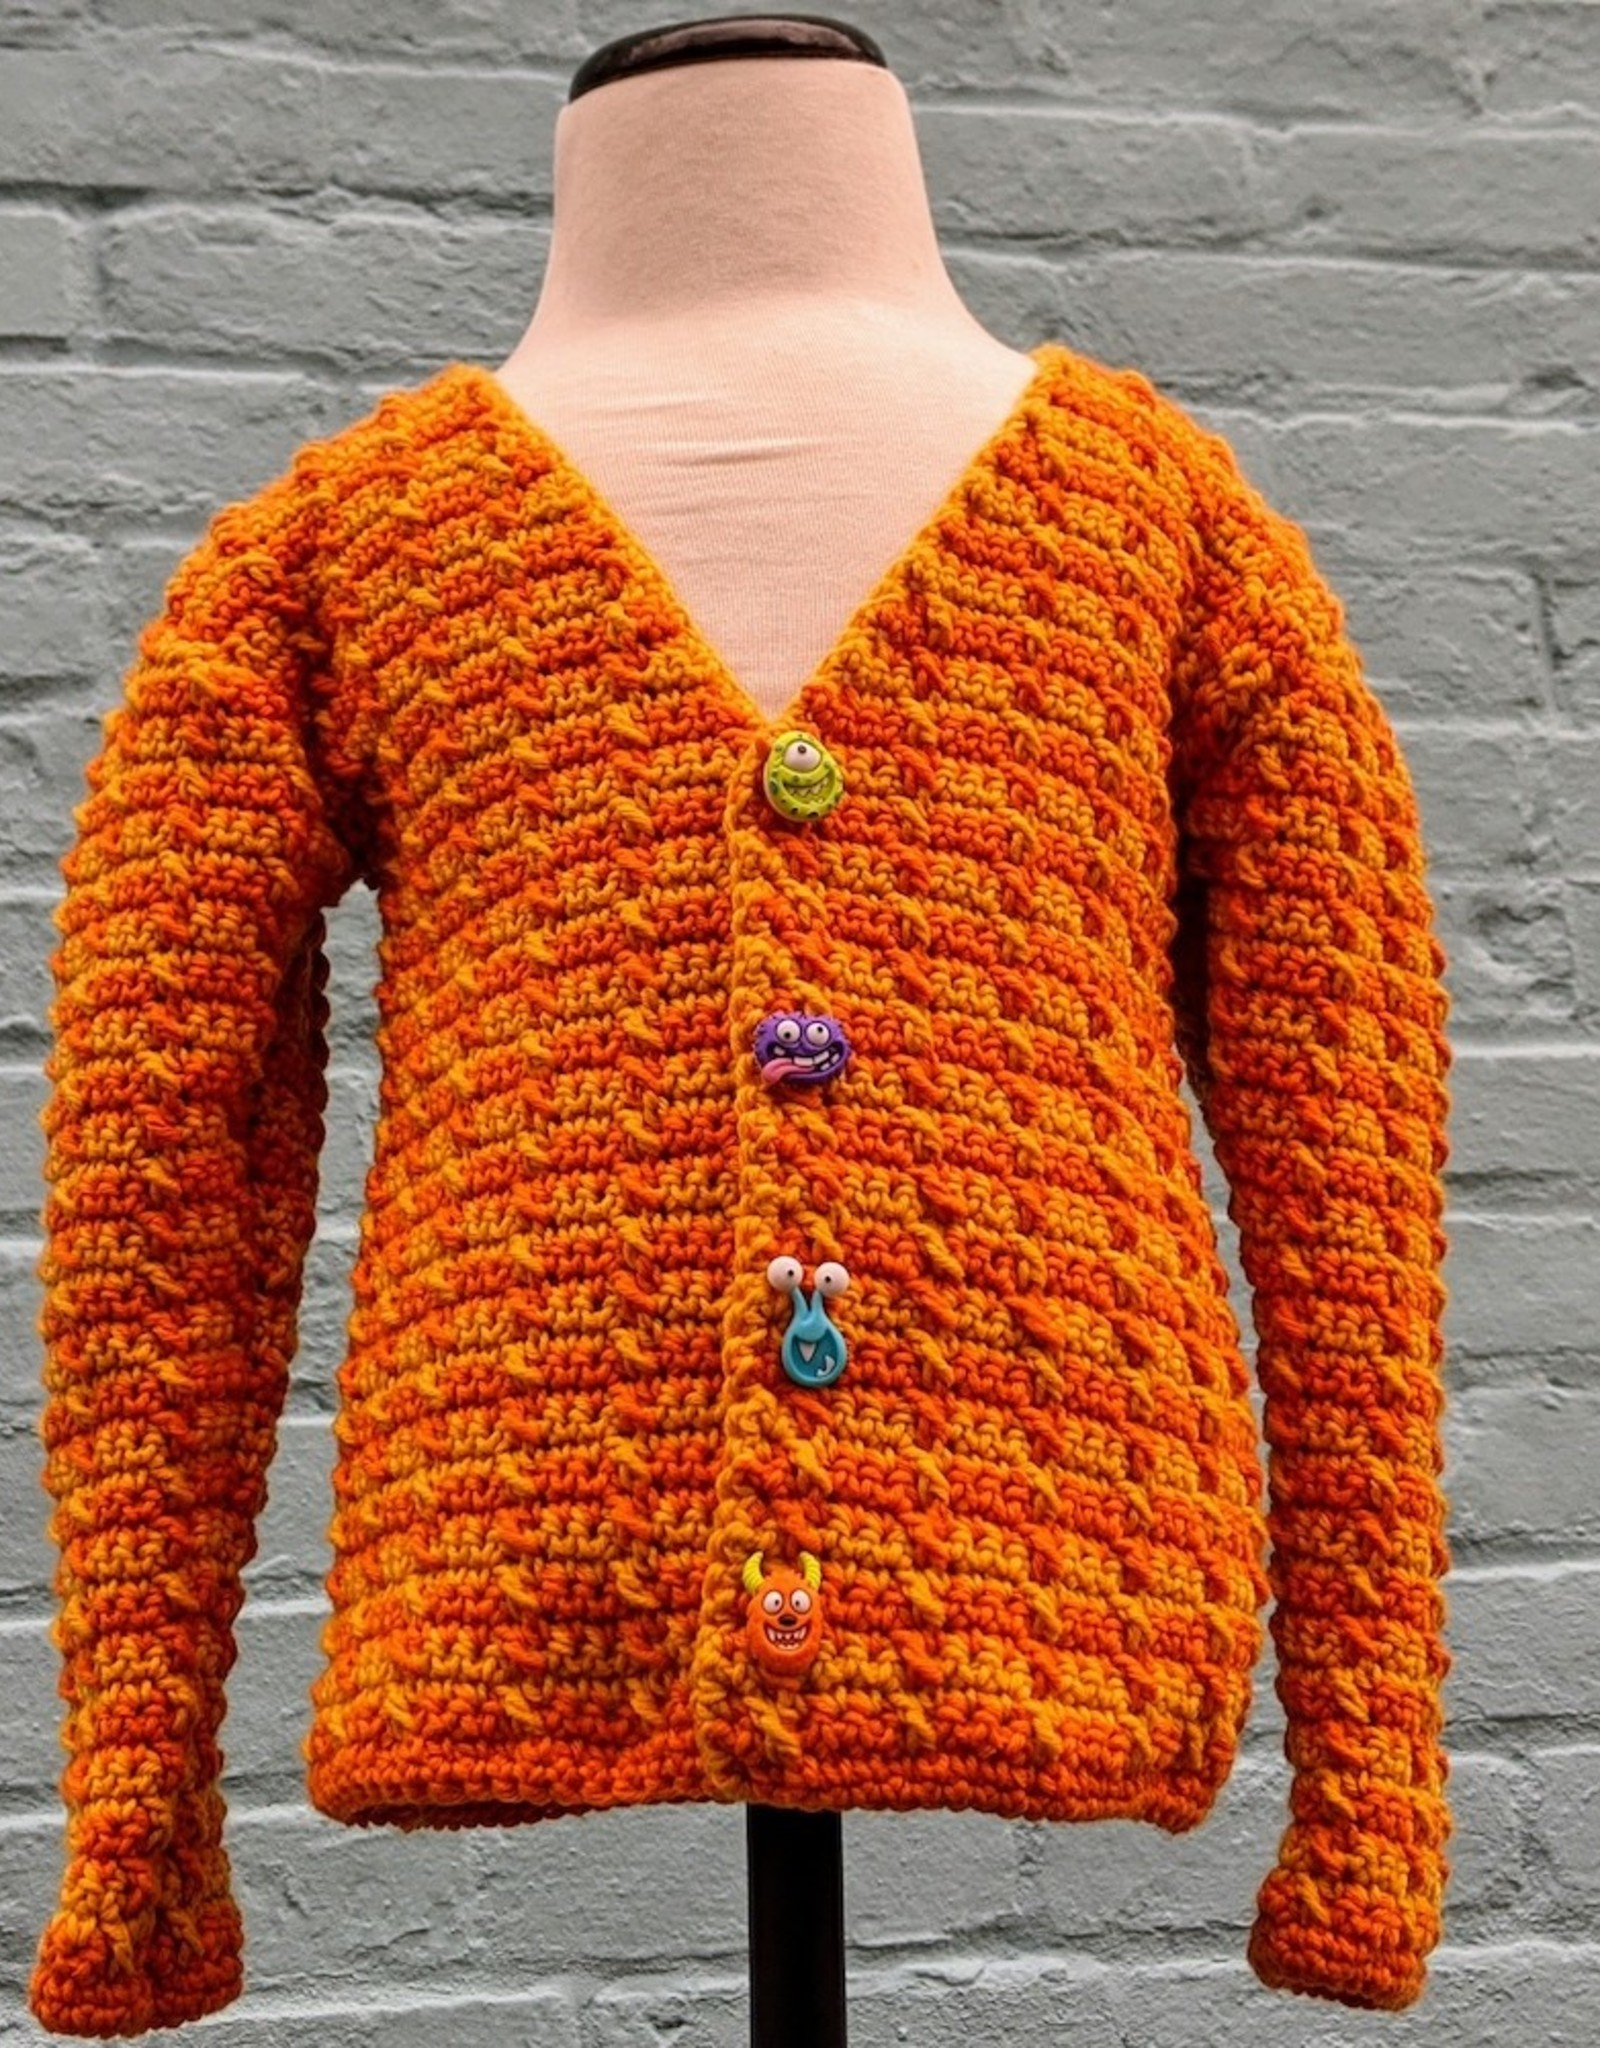 First Crochet Sweater: MO Feb 1, 8 & 15, 7-9 pm